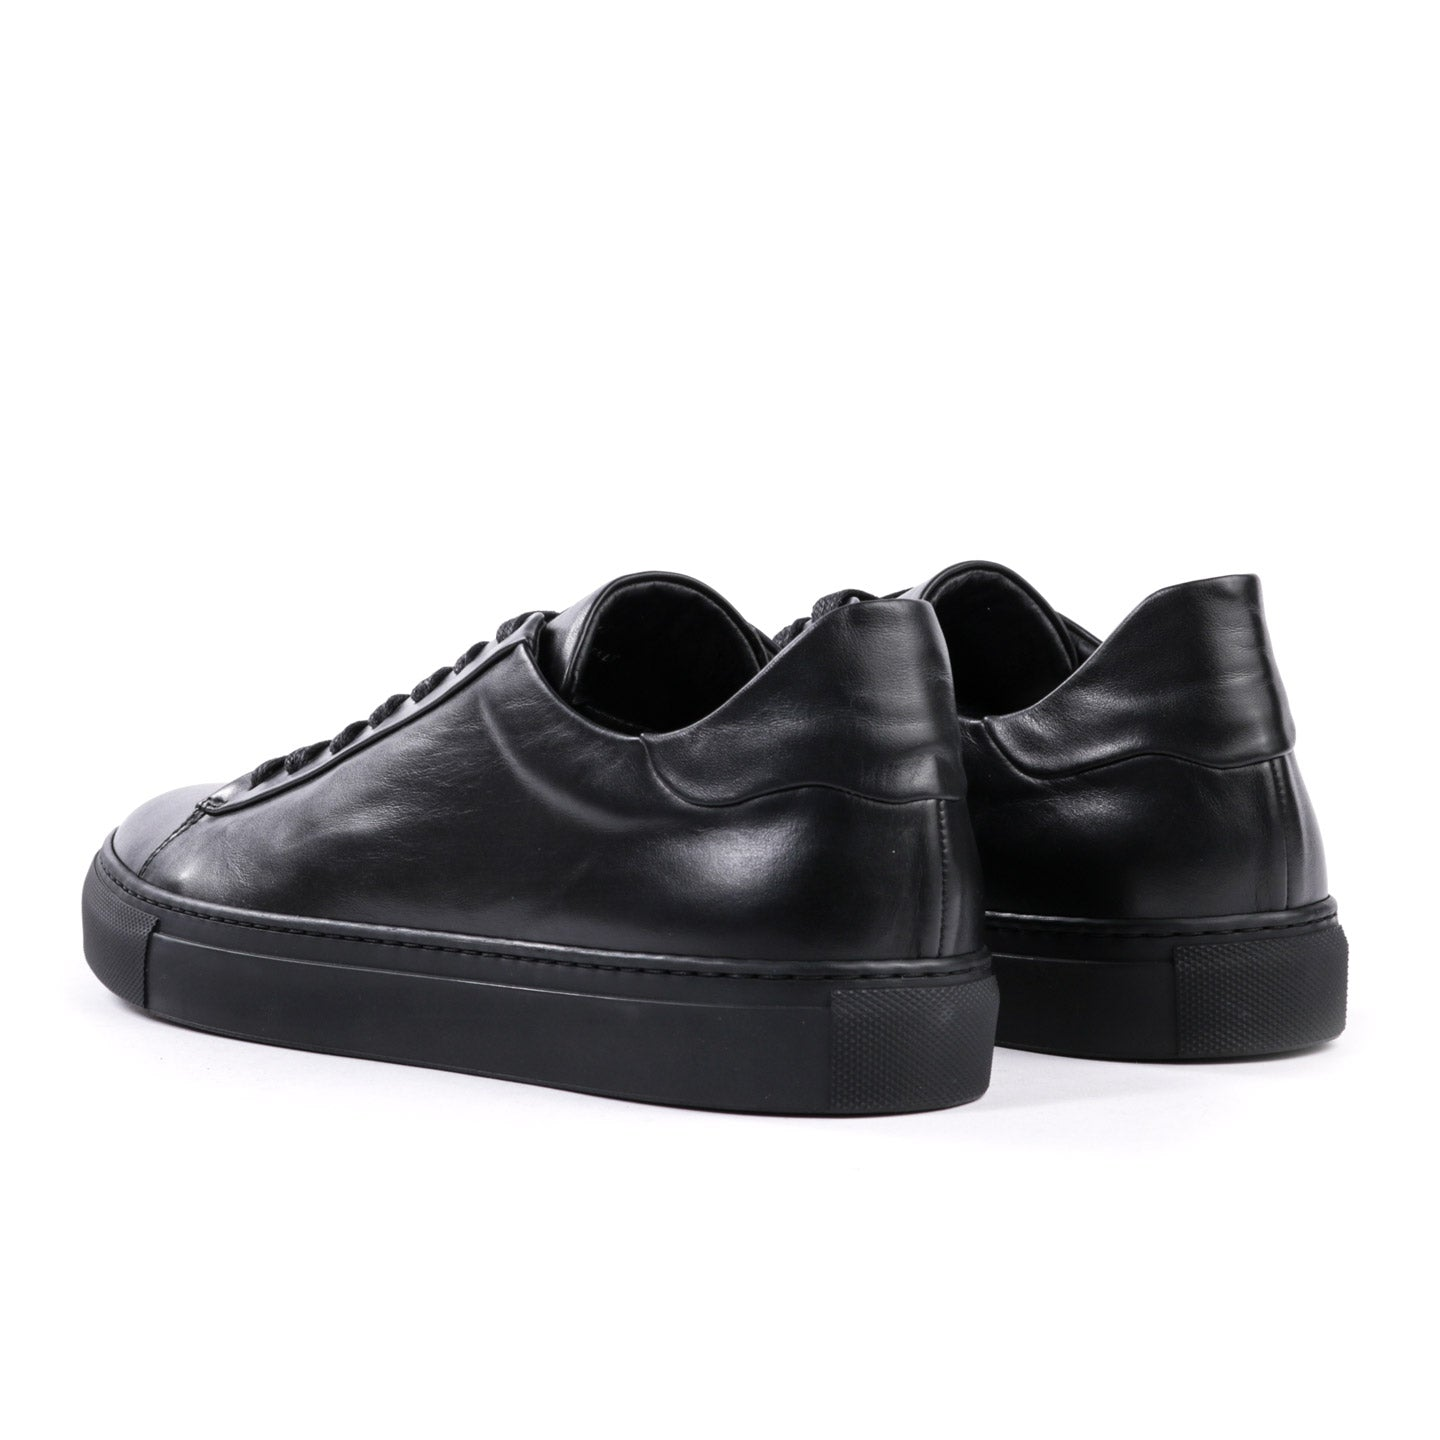 WINGS + HORNS COURT LOW SOFTY LEATHER BLACK / BLACK